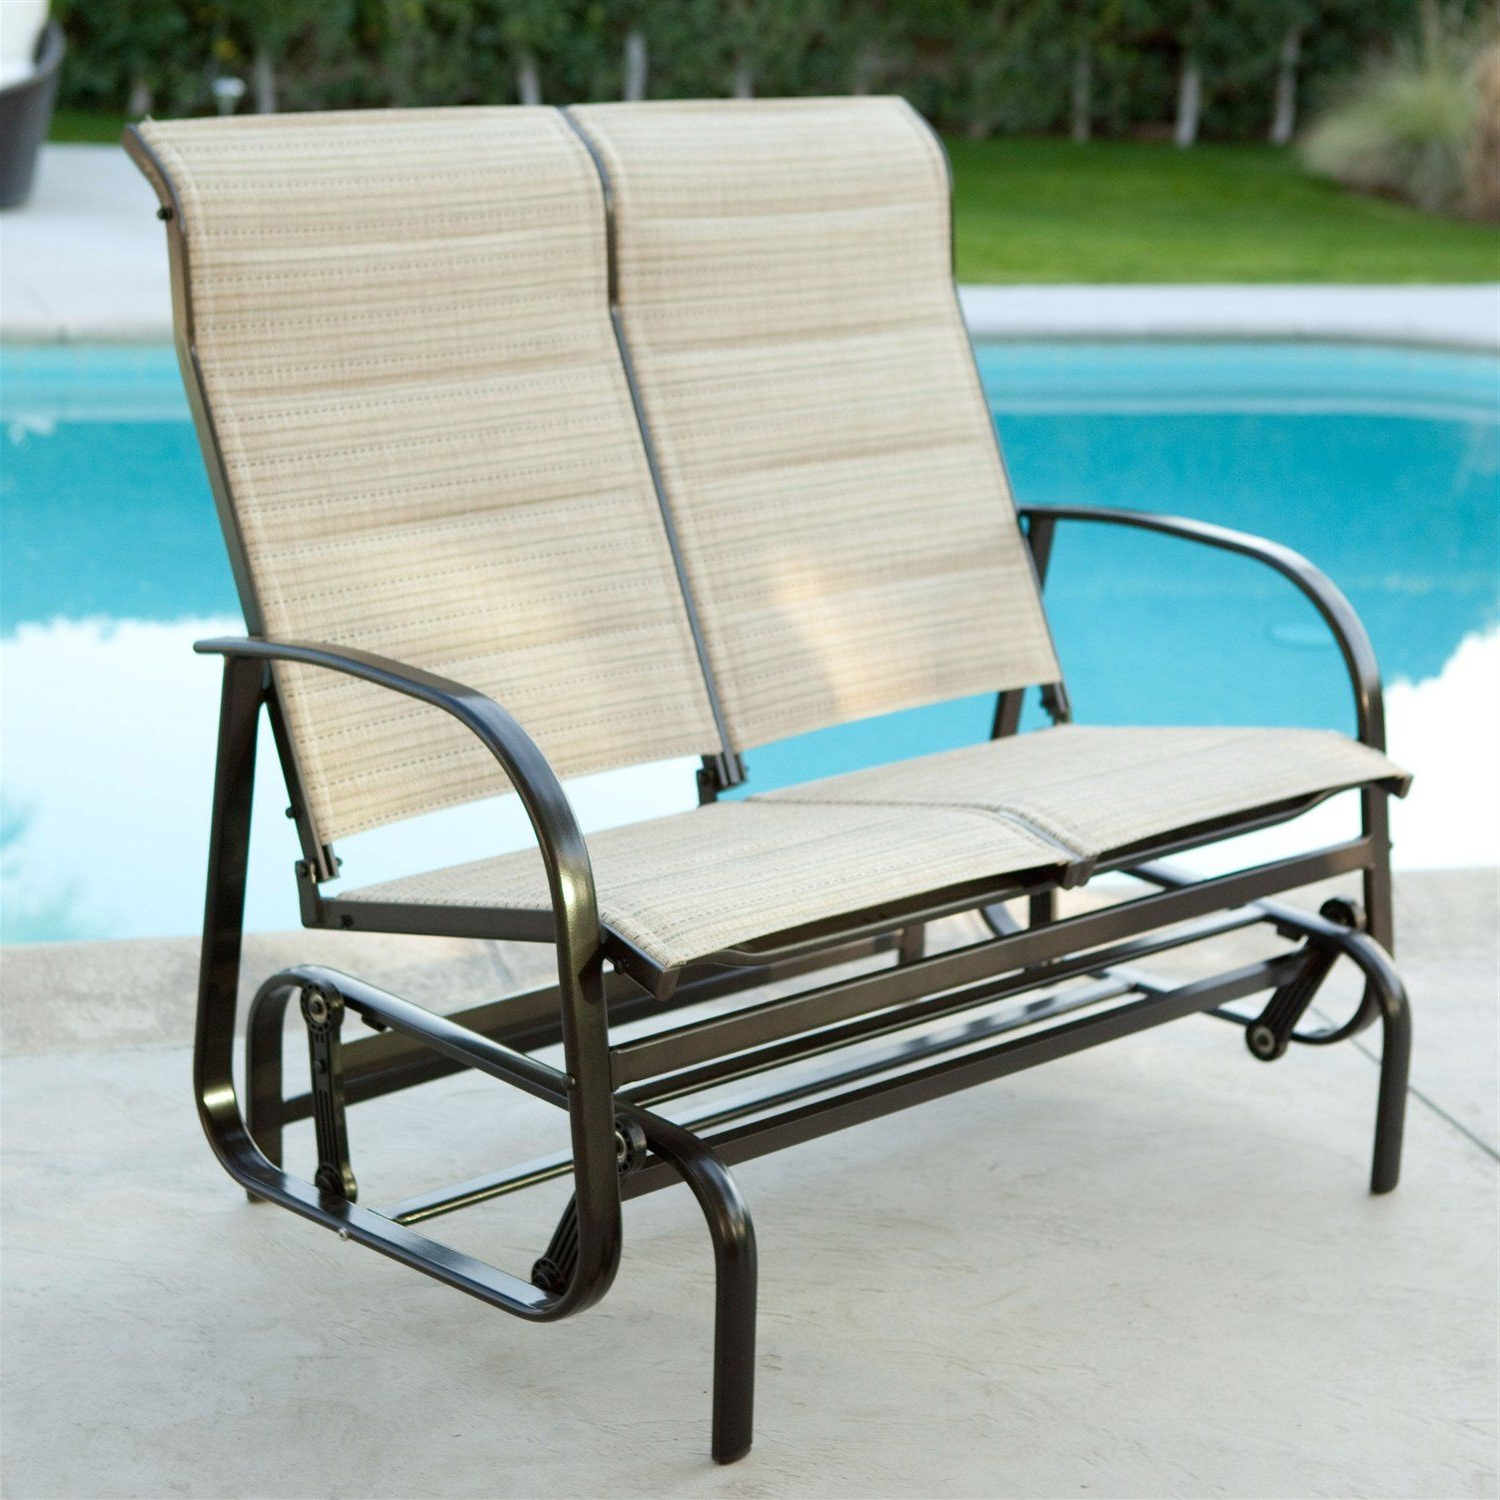 Most Recently Released Outdoor Glider Patio Chair Loveseat With Padded Sling Seats Intended For Padded Sling Loveseats With Cushions (Gallery 28 of 30)